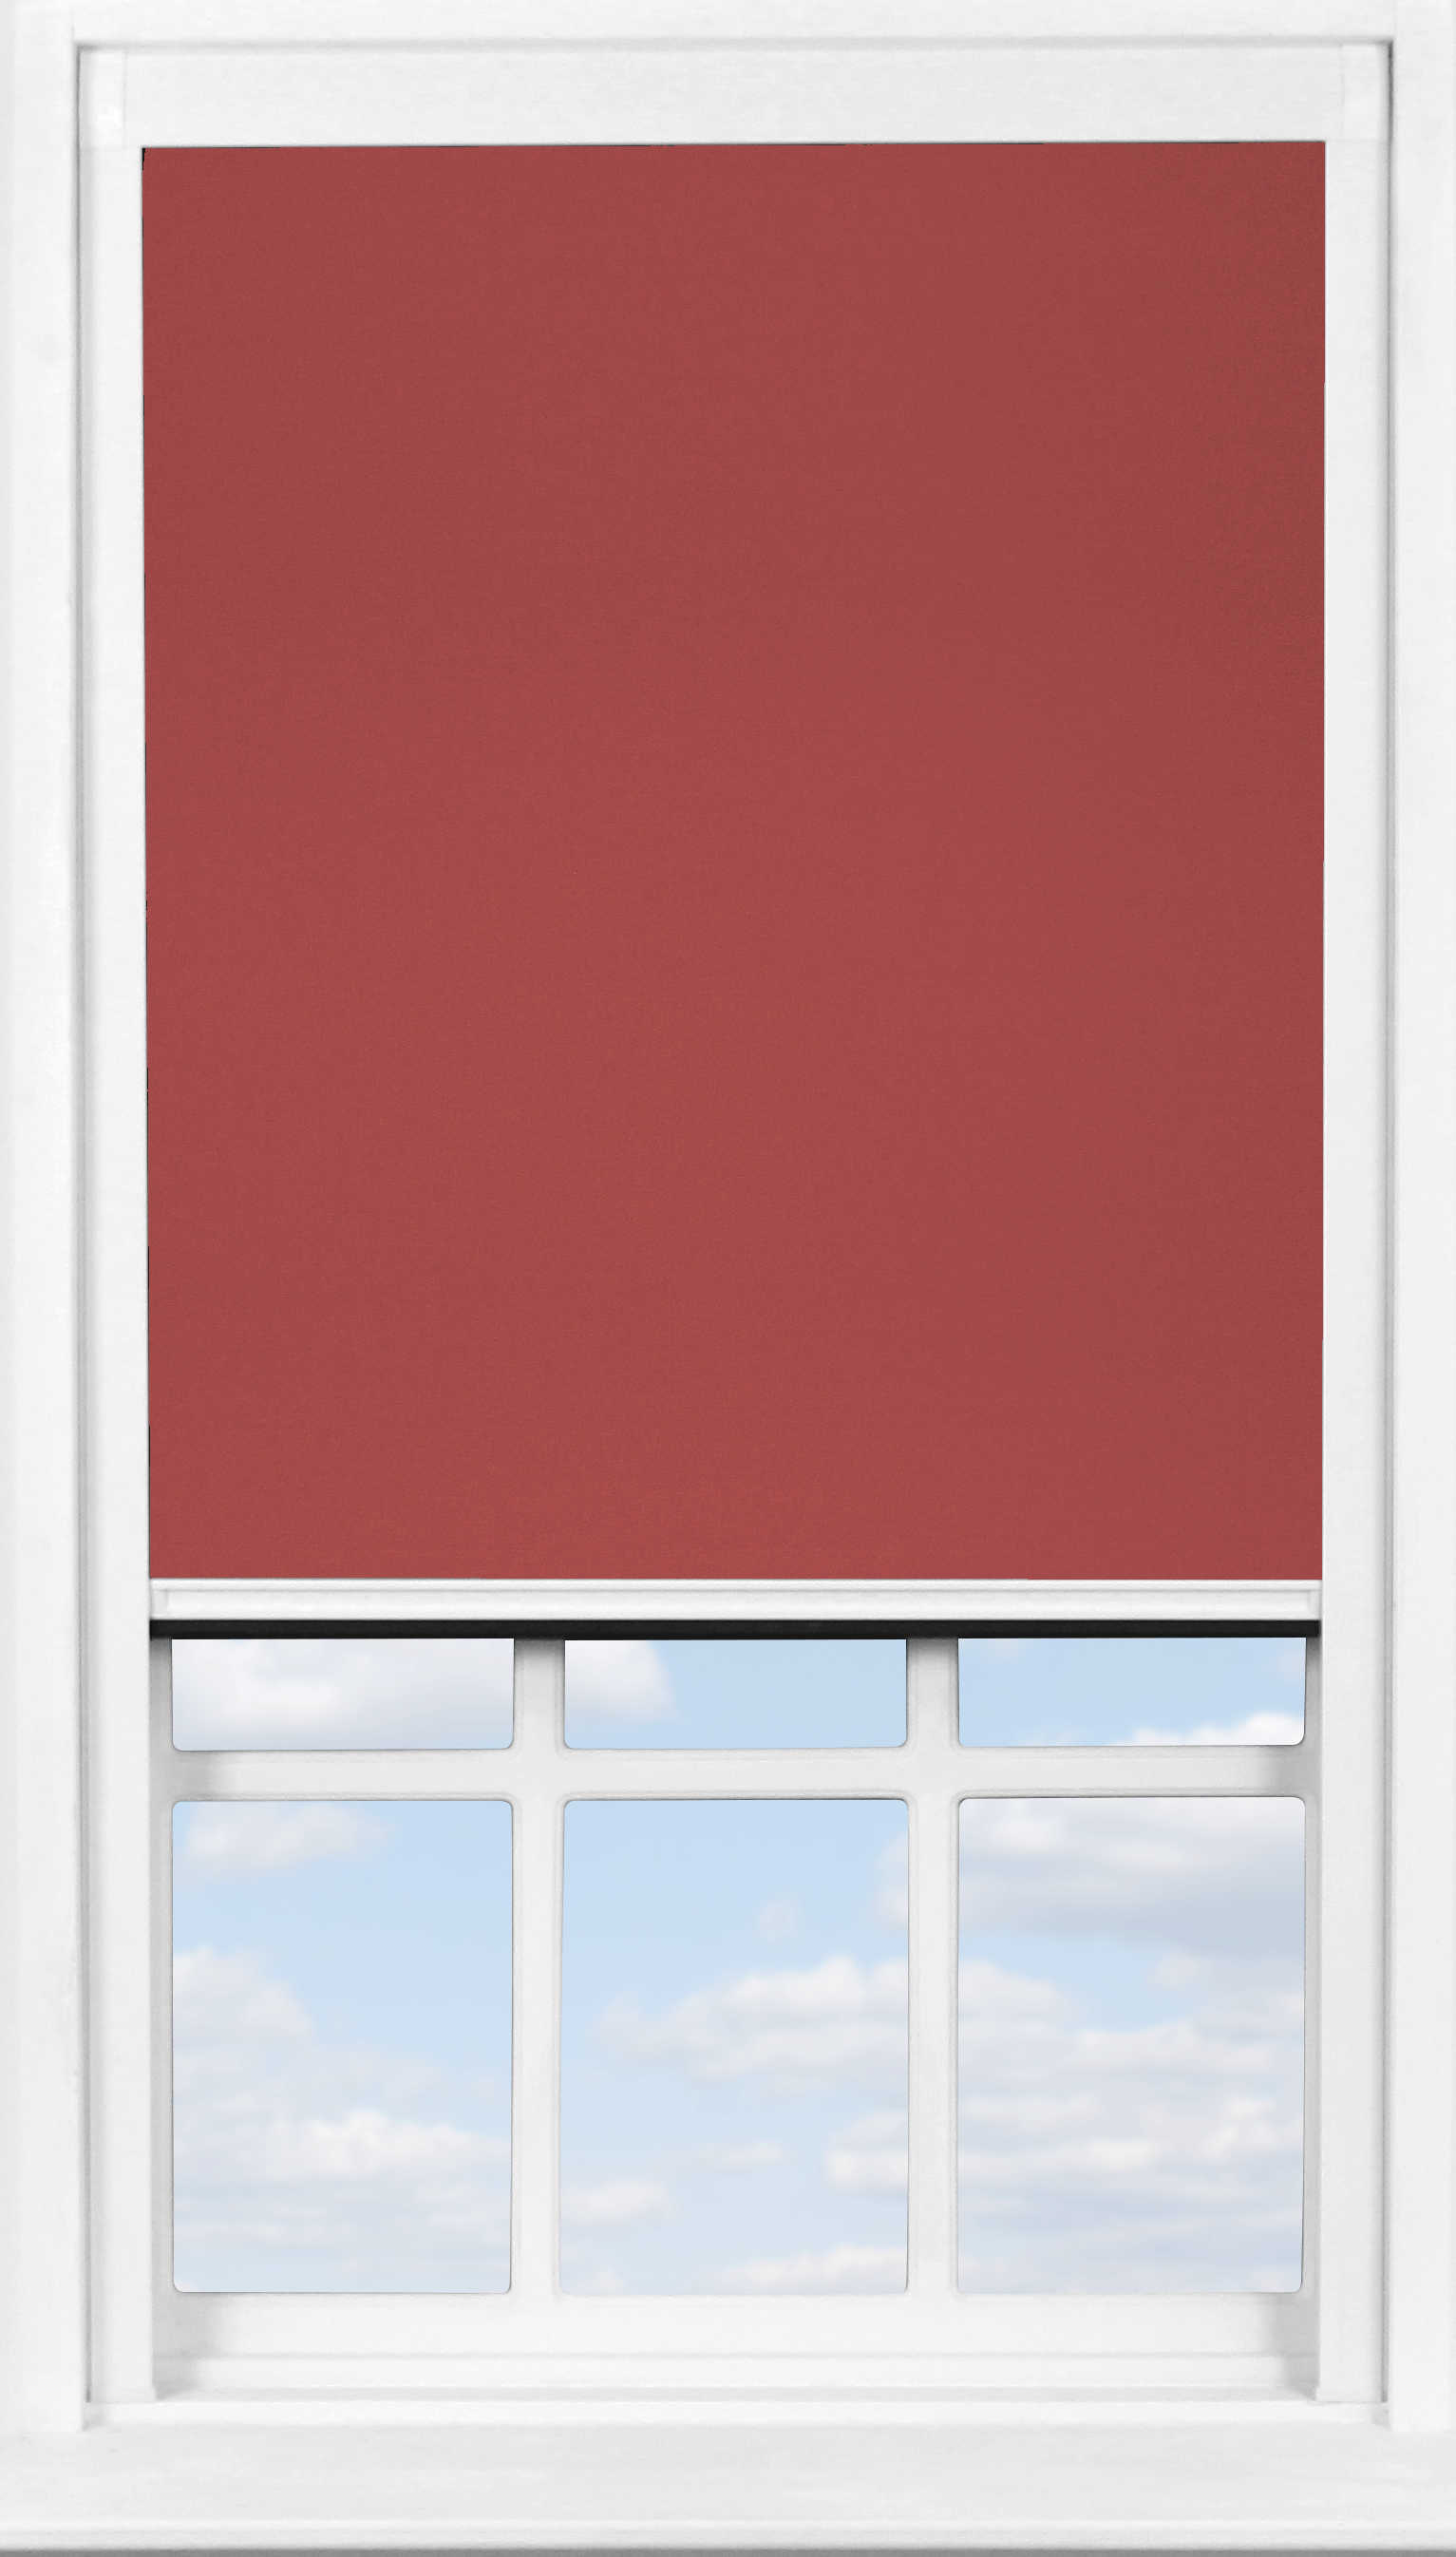 renovation shades buy choosing blinds your how best curtains window guide and pick choose dressing home to